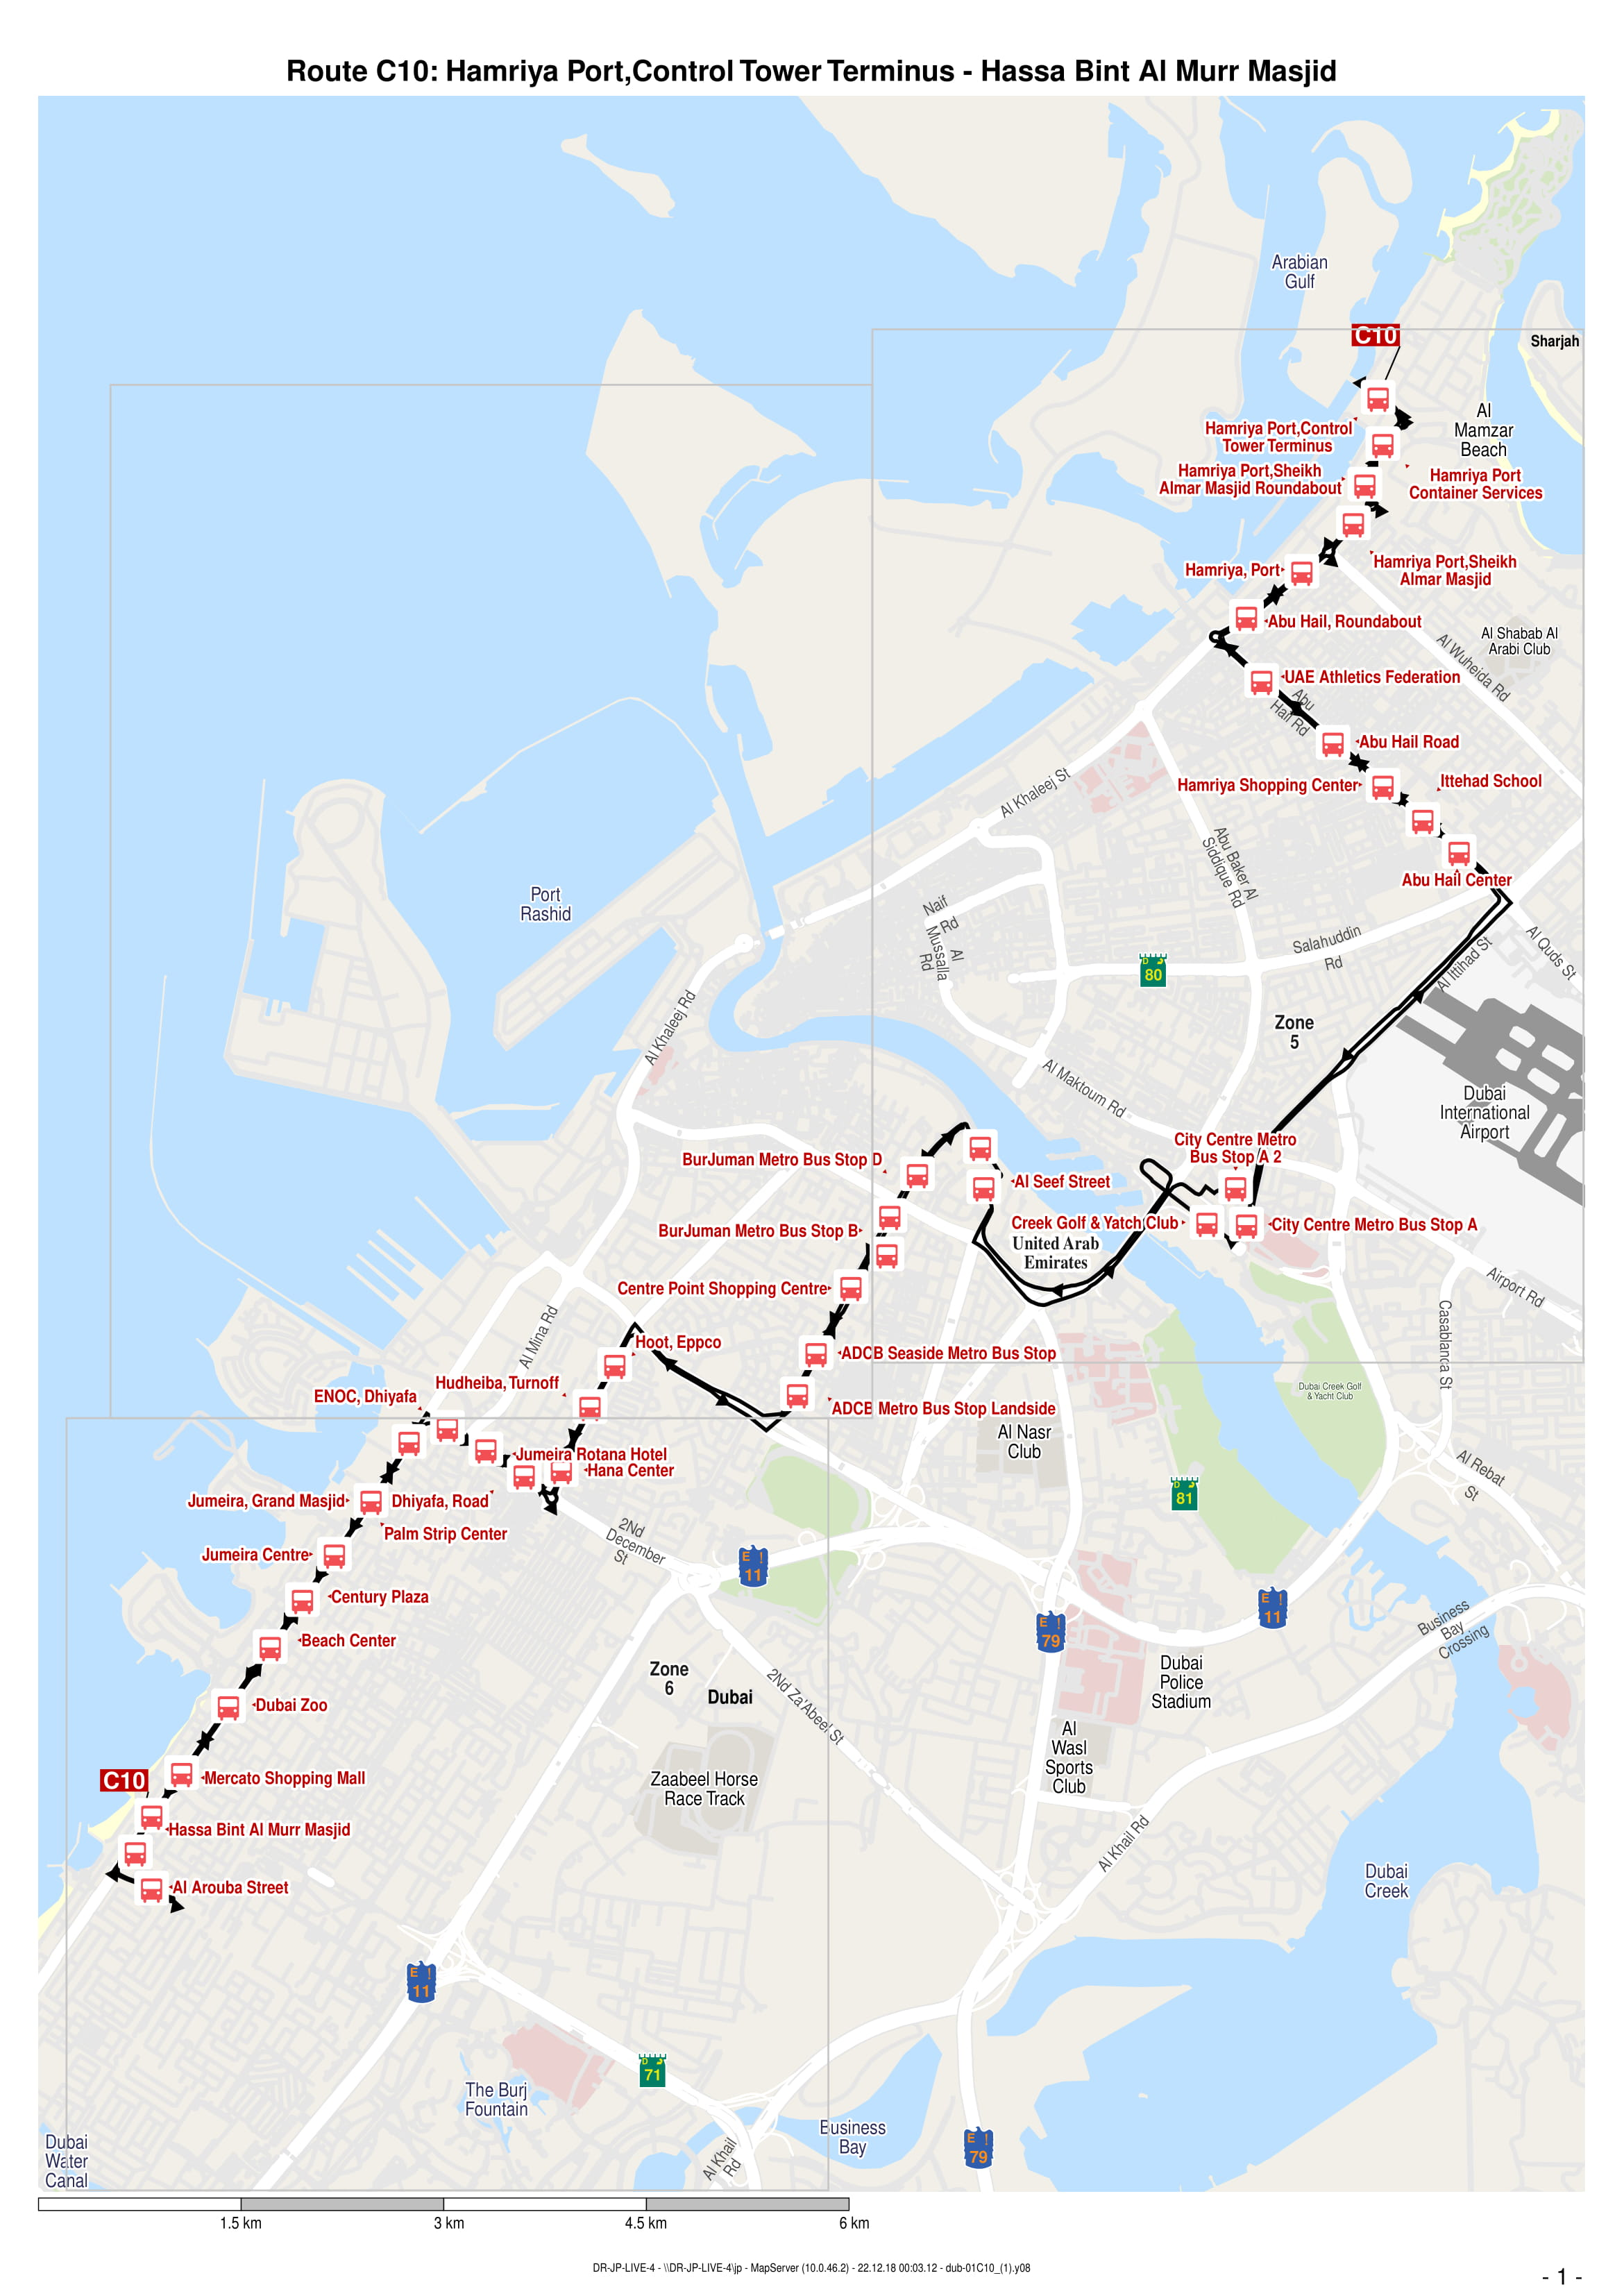 c10 bus route in dubai - time schedule, stops and maps